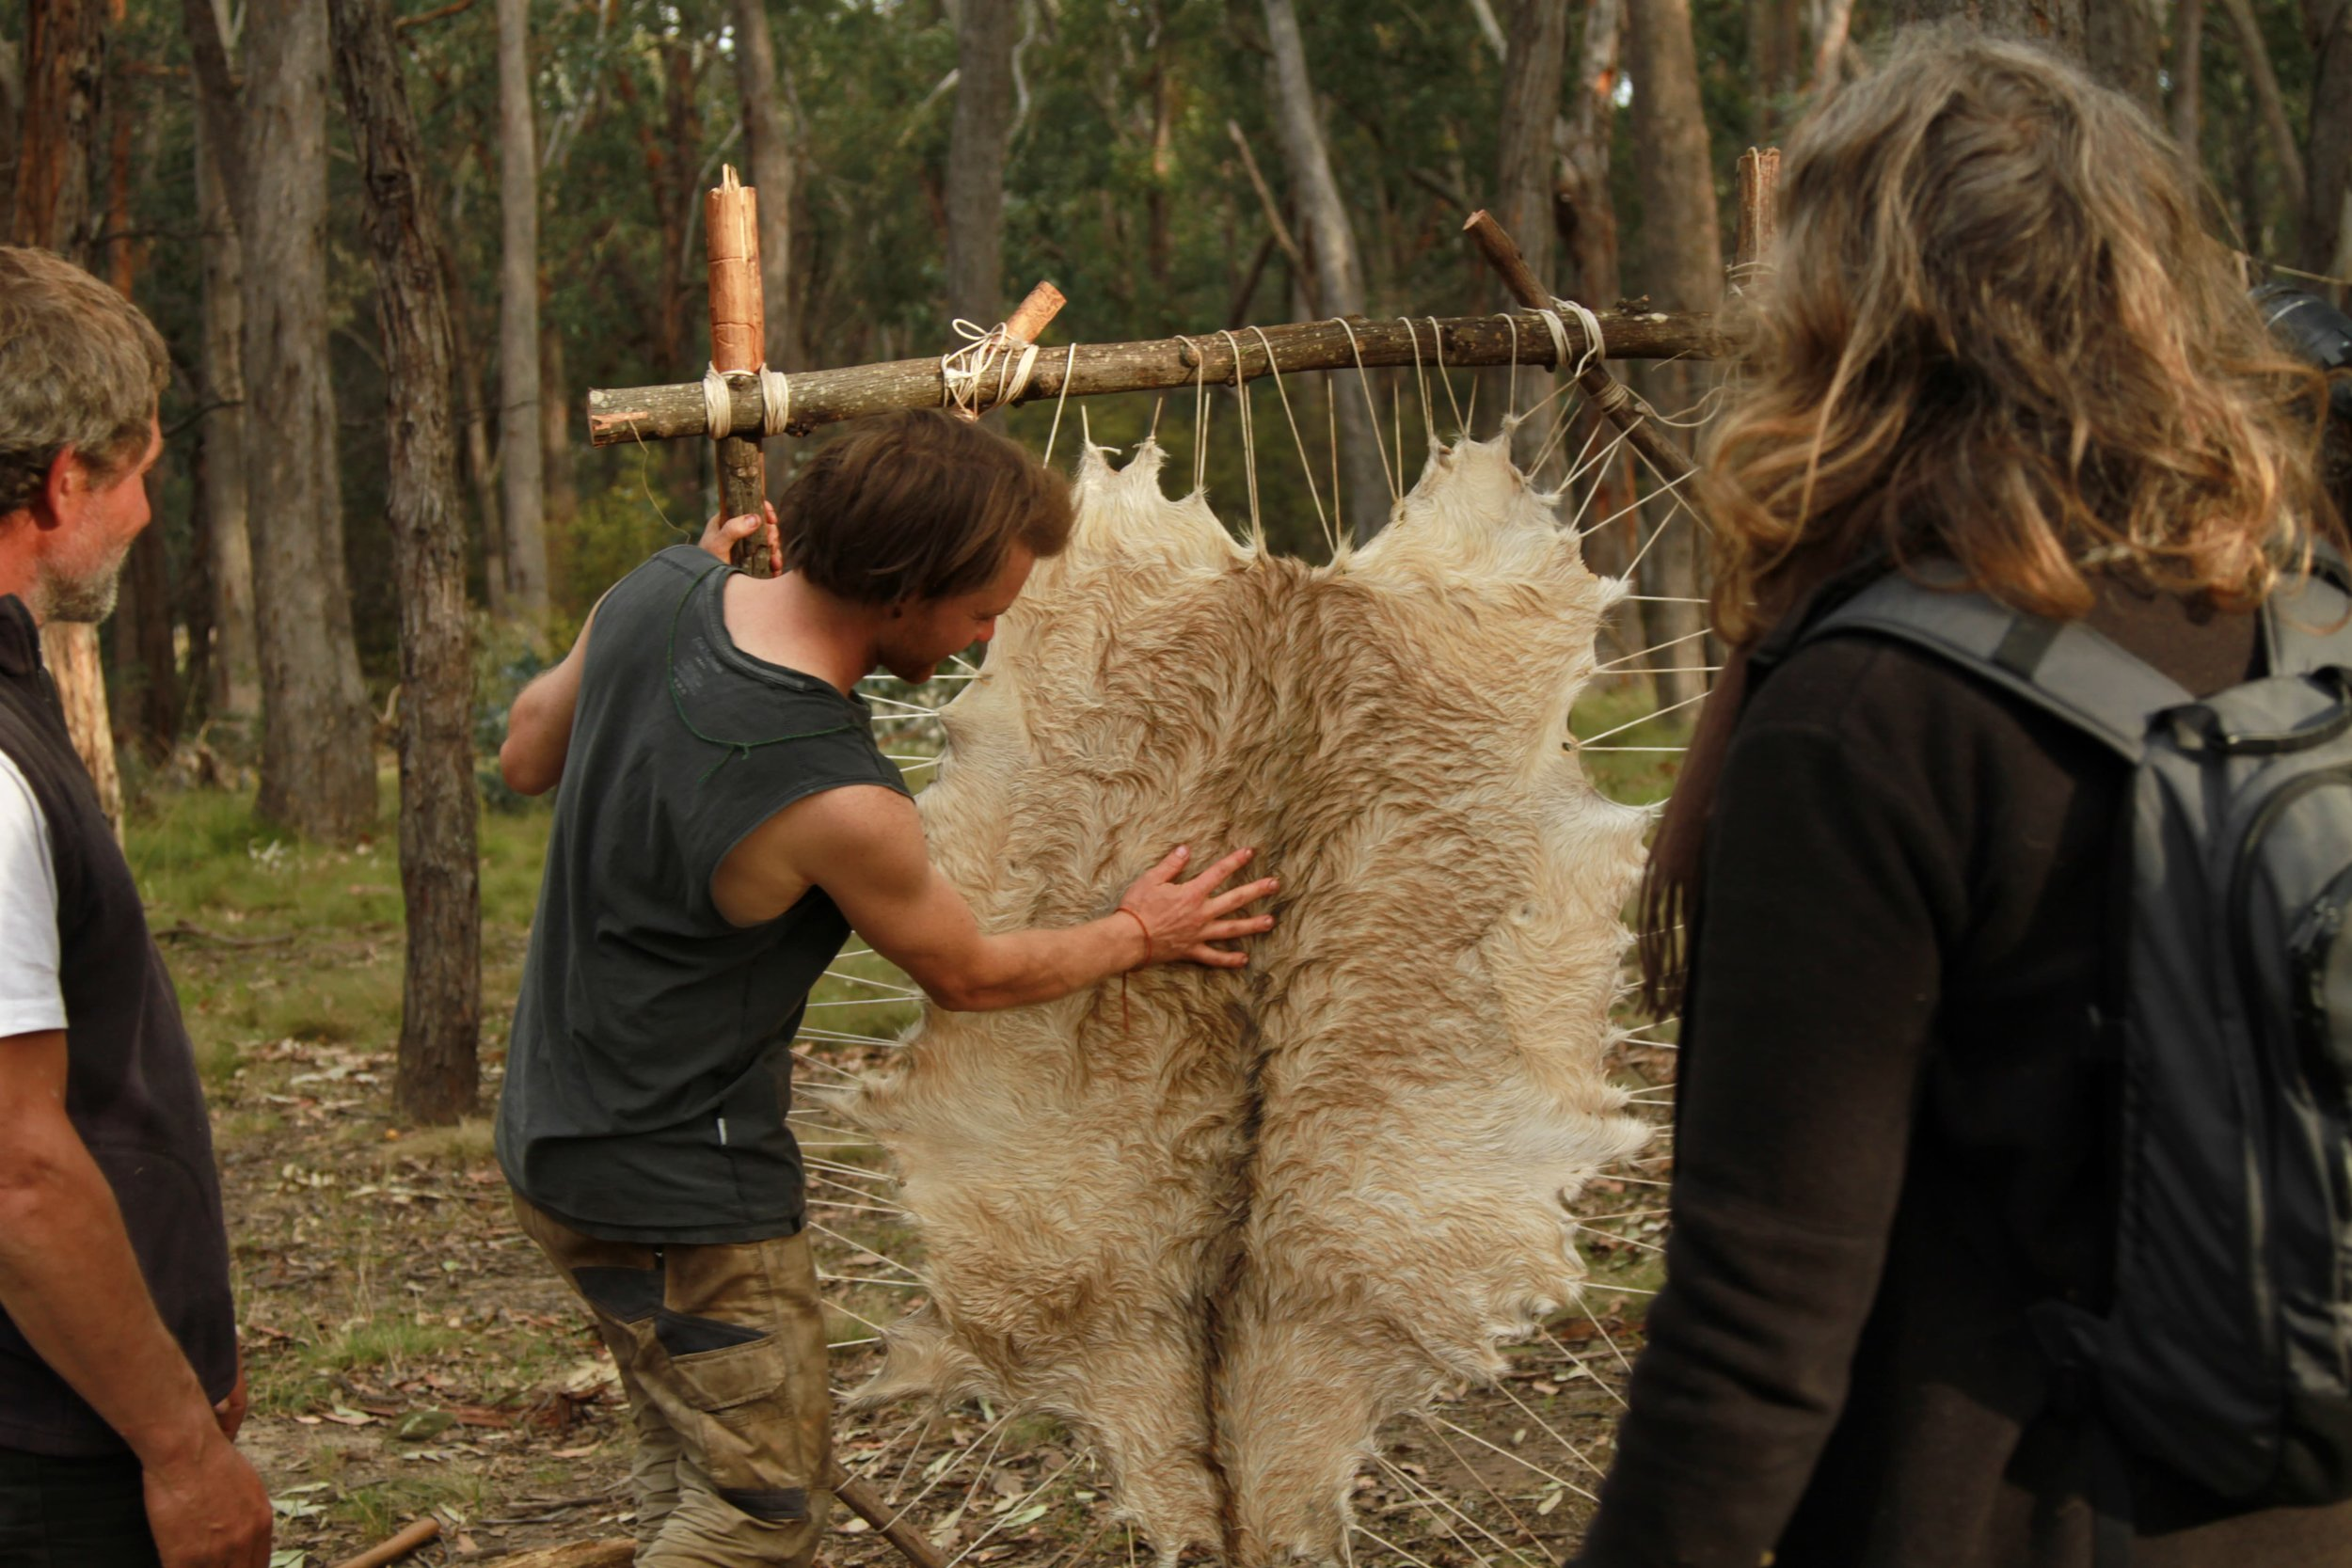 Pictured: Your facilitator Josh McLean standing the frame up after participants took turns at stringing up the wild goat hide that they had the chance to prepare for transforming into a furskin rug.